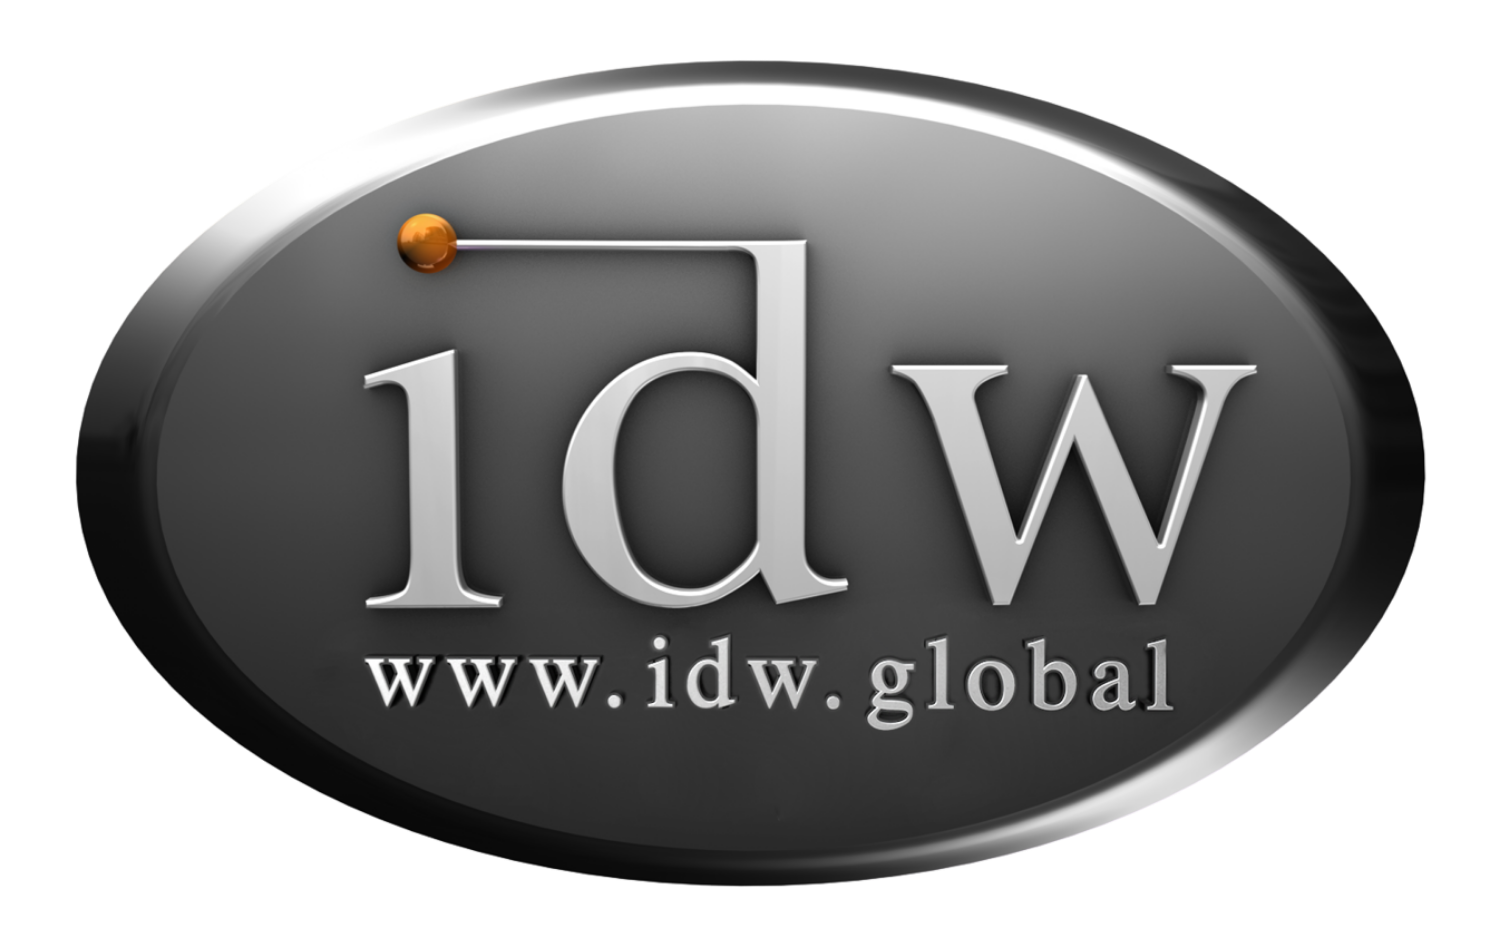 IDW: Innovative DisplayWorks